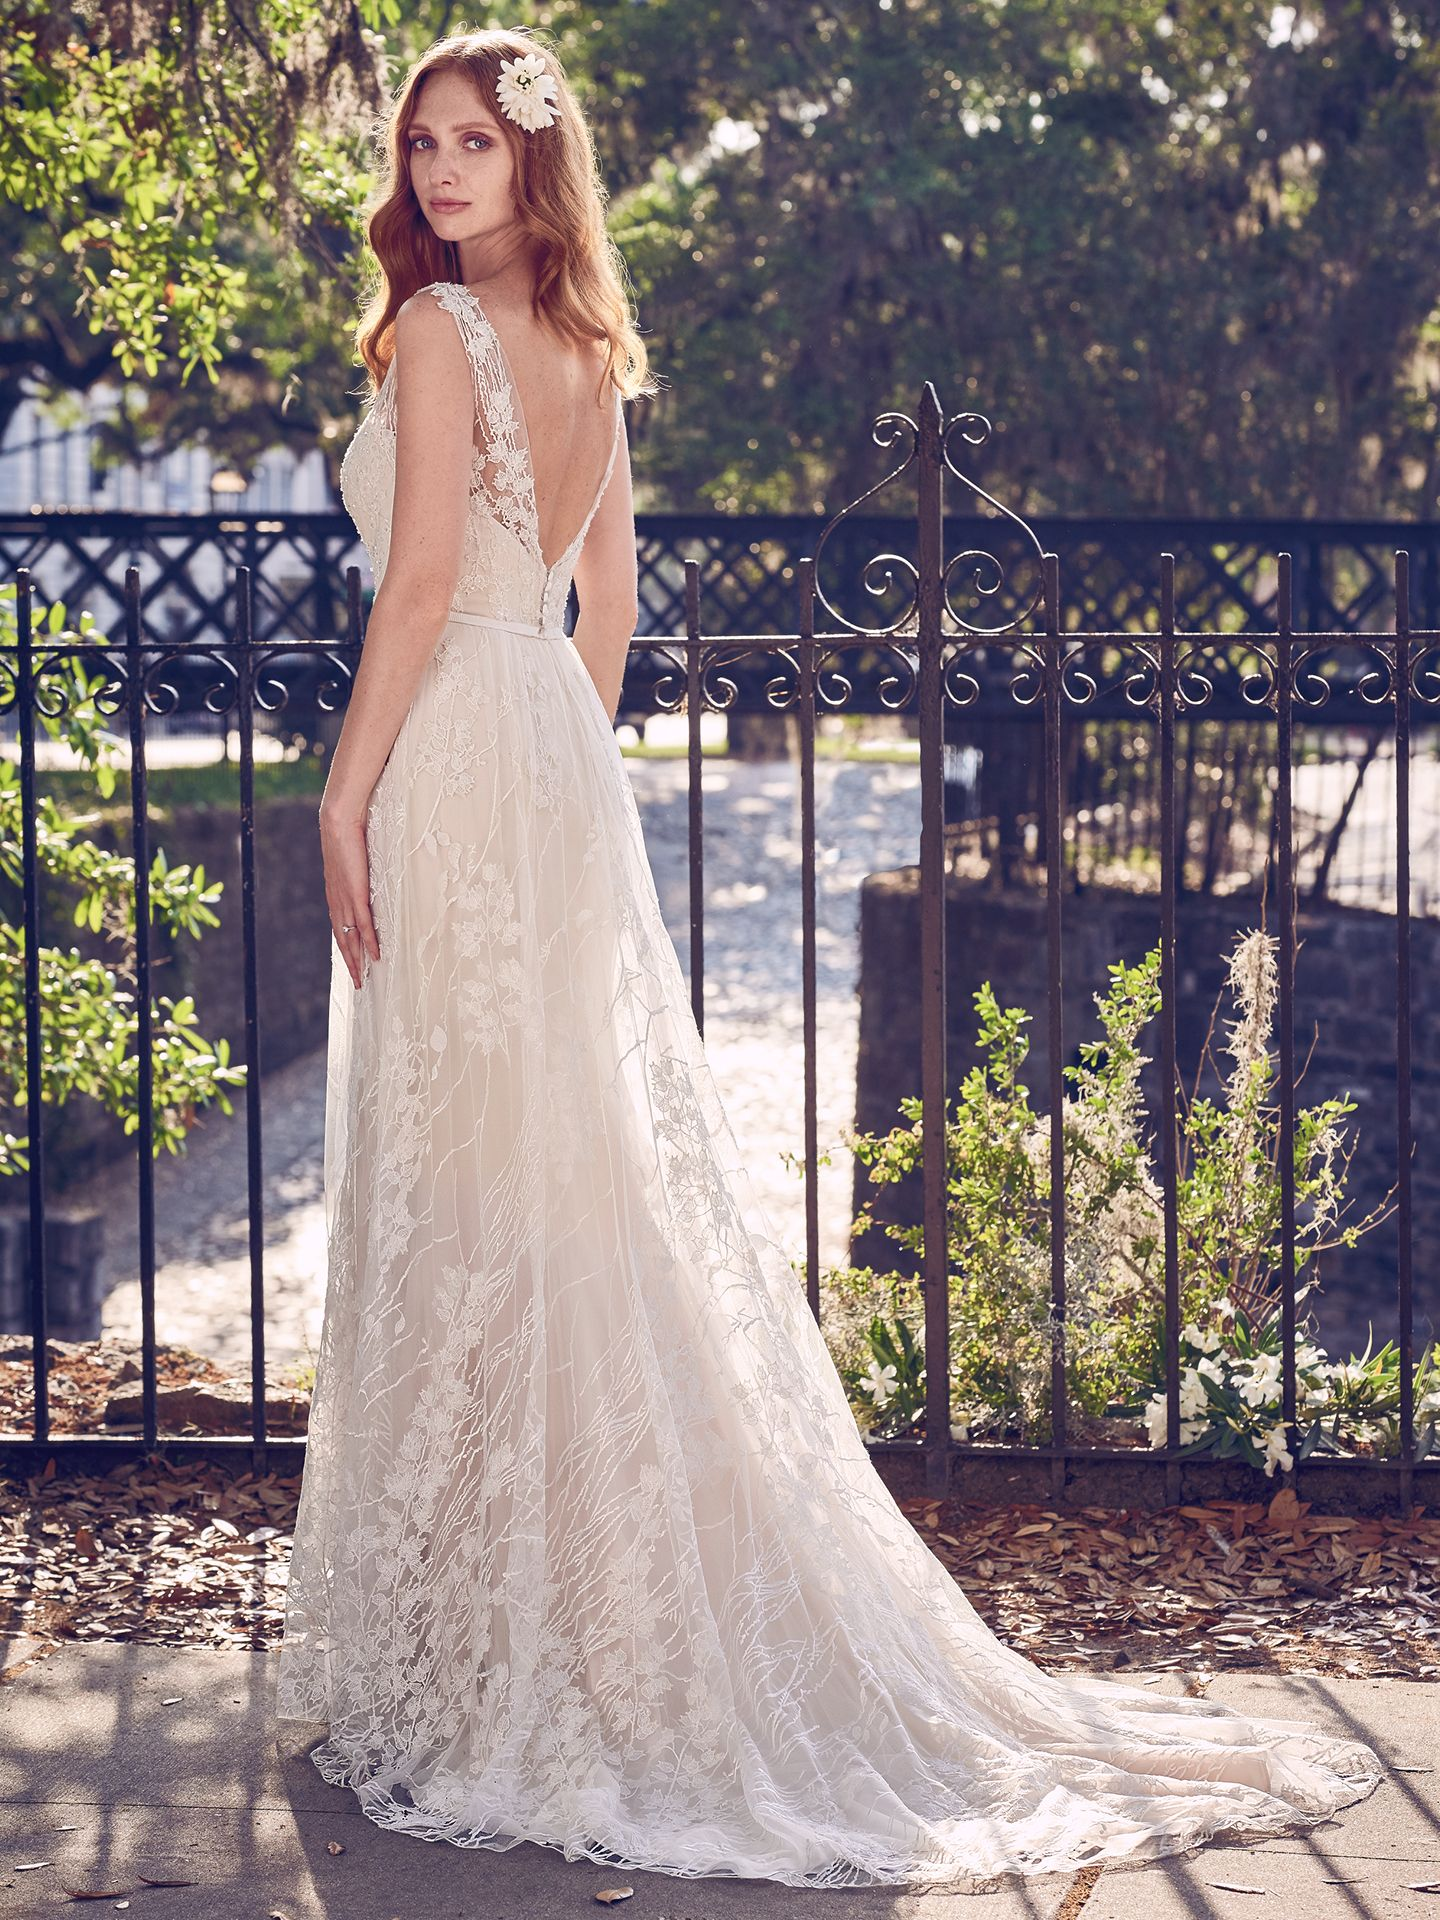 6 best wedding dresses for a rustic wedding love maggie love maggie 6 best wedding dresses for a rustic wedding geddes wedding dress by maggie sottero junglespirit Gallery